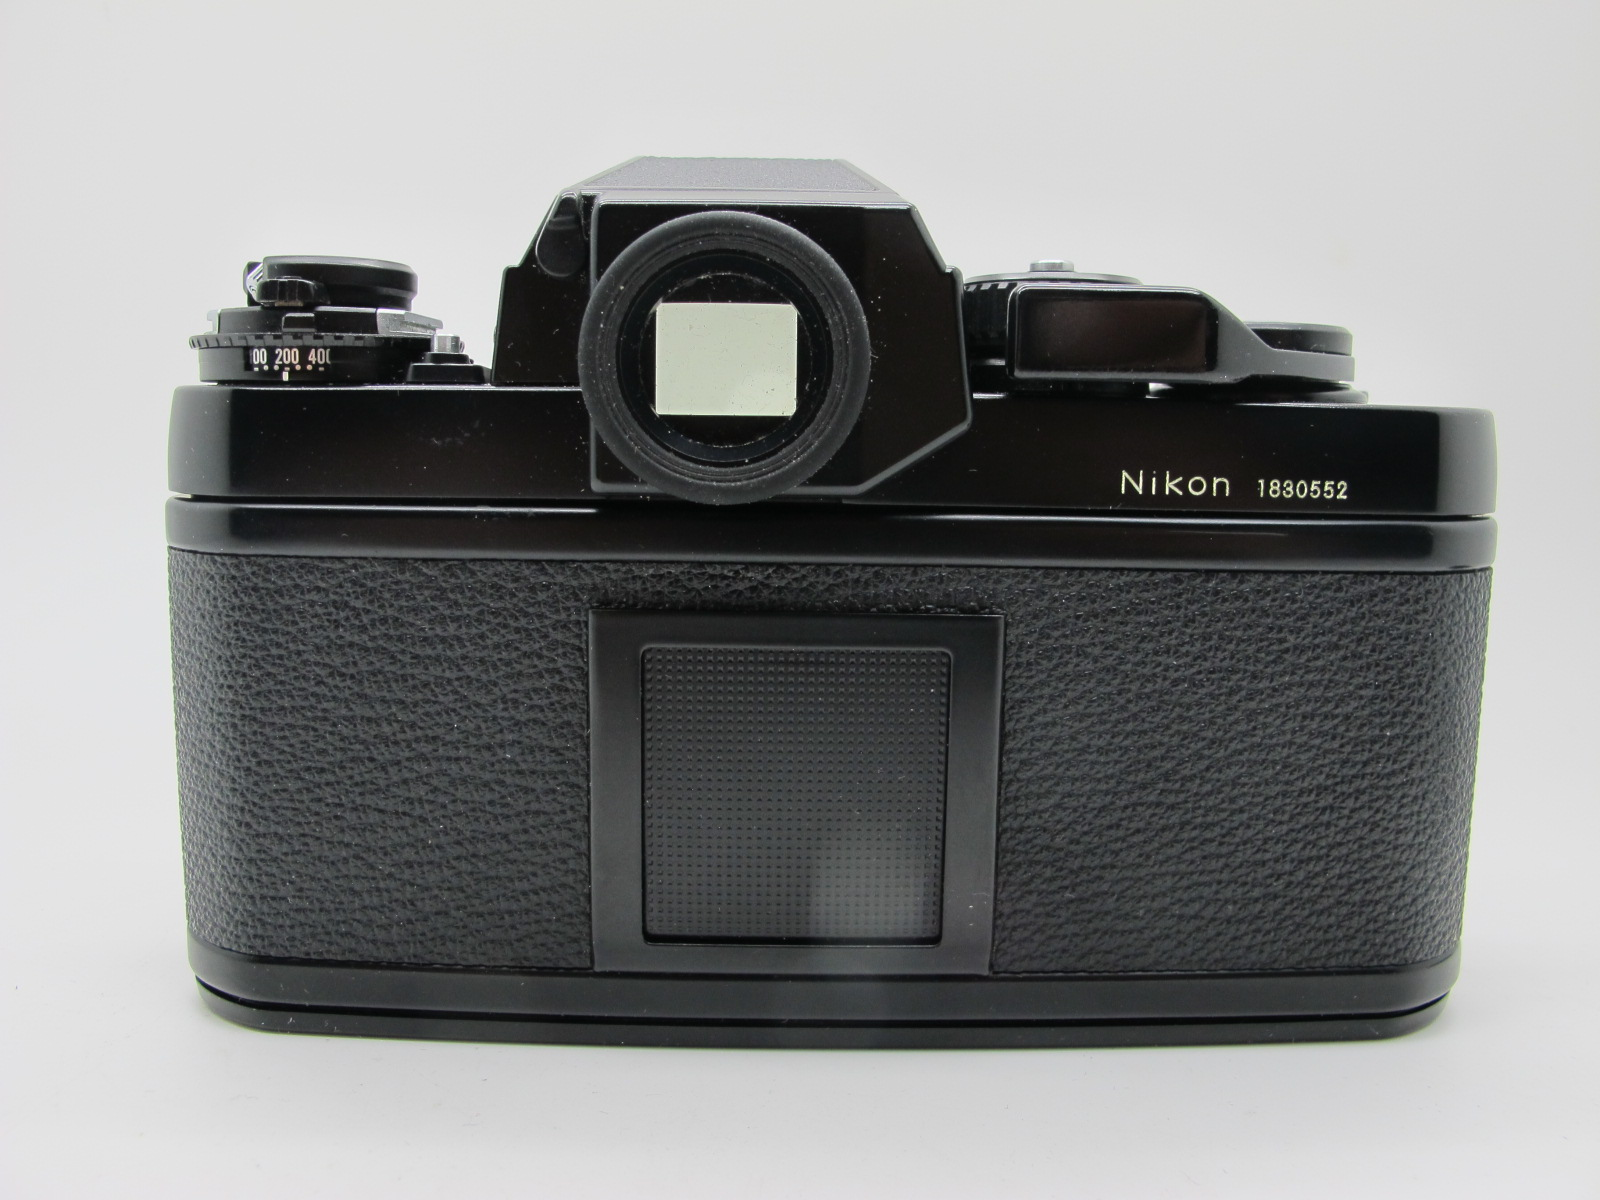 Nikon F3, with Nikkor-H Auto 1-18 f=85mm lens. - Image 5 of 9